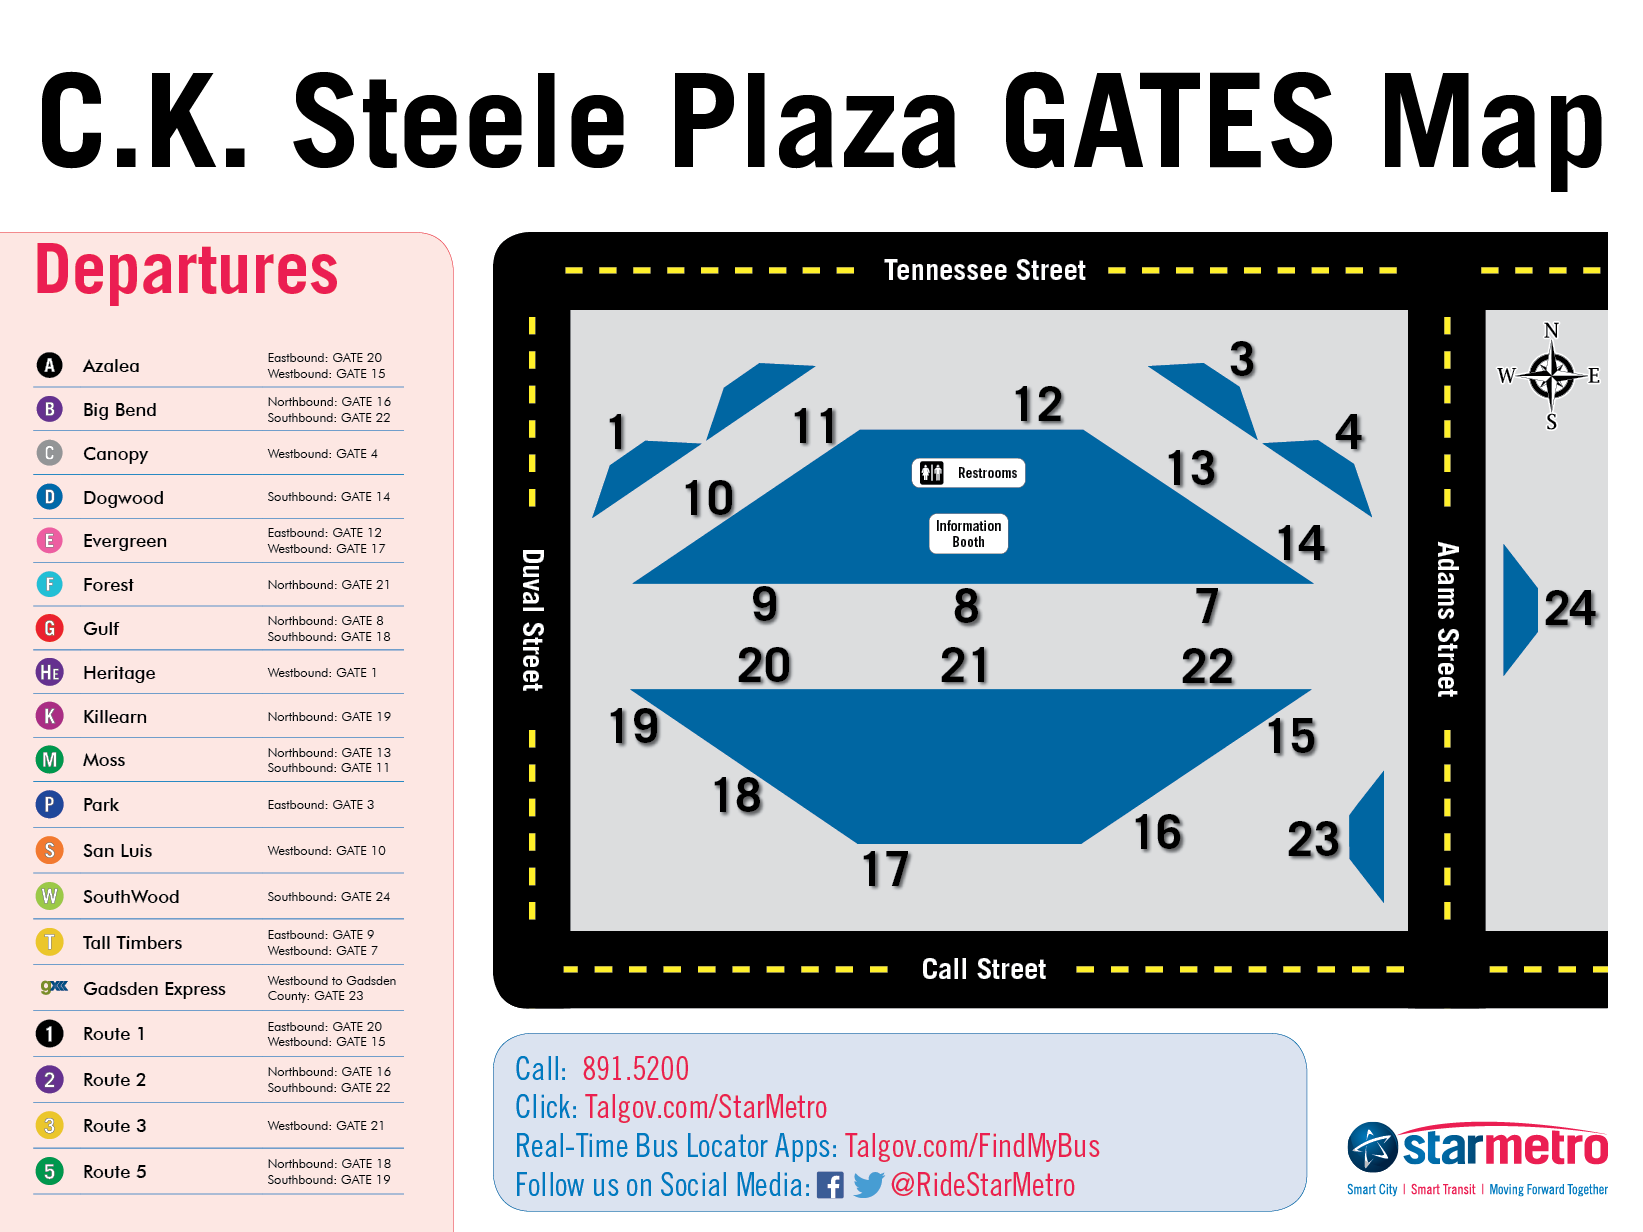 C.K. Steele Plaza Gate Map